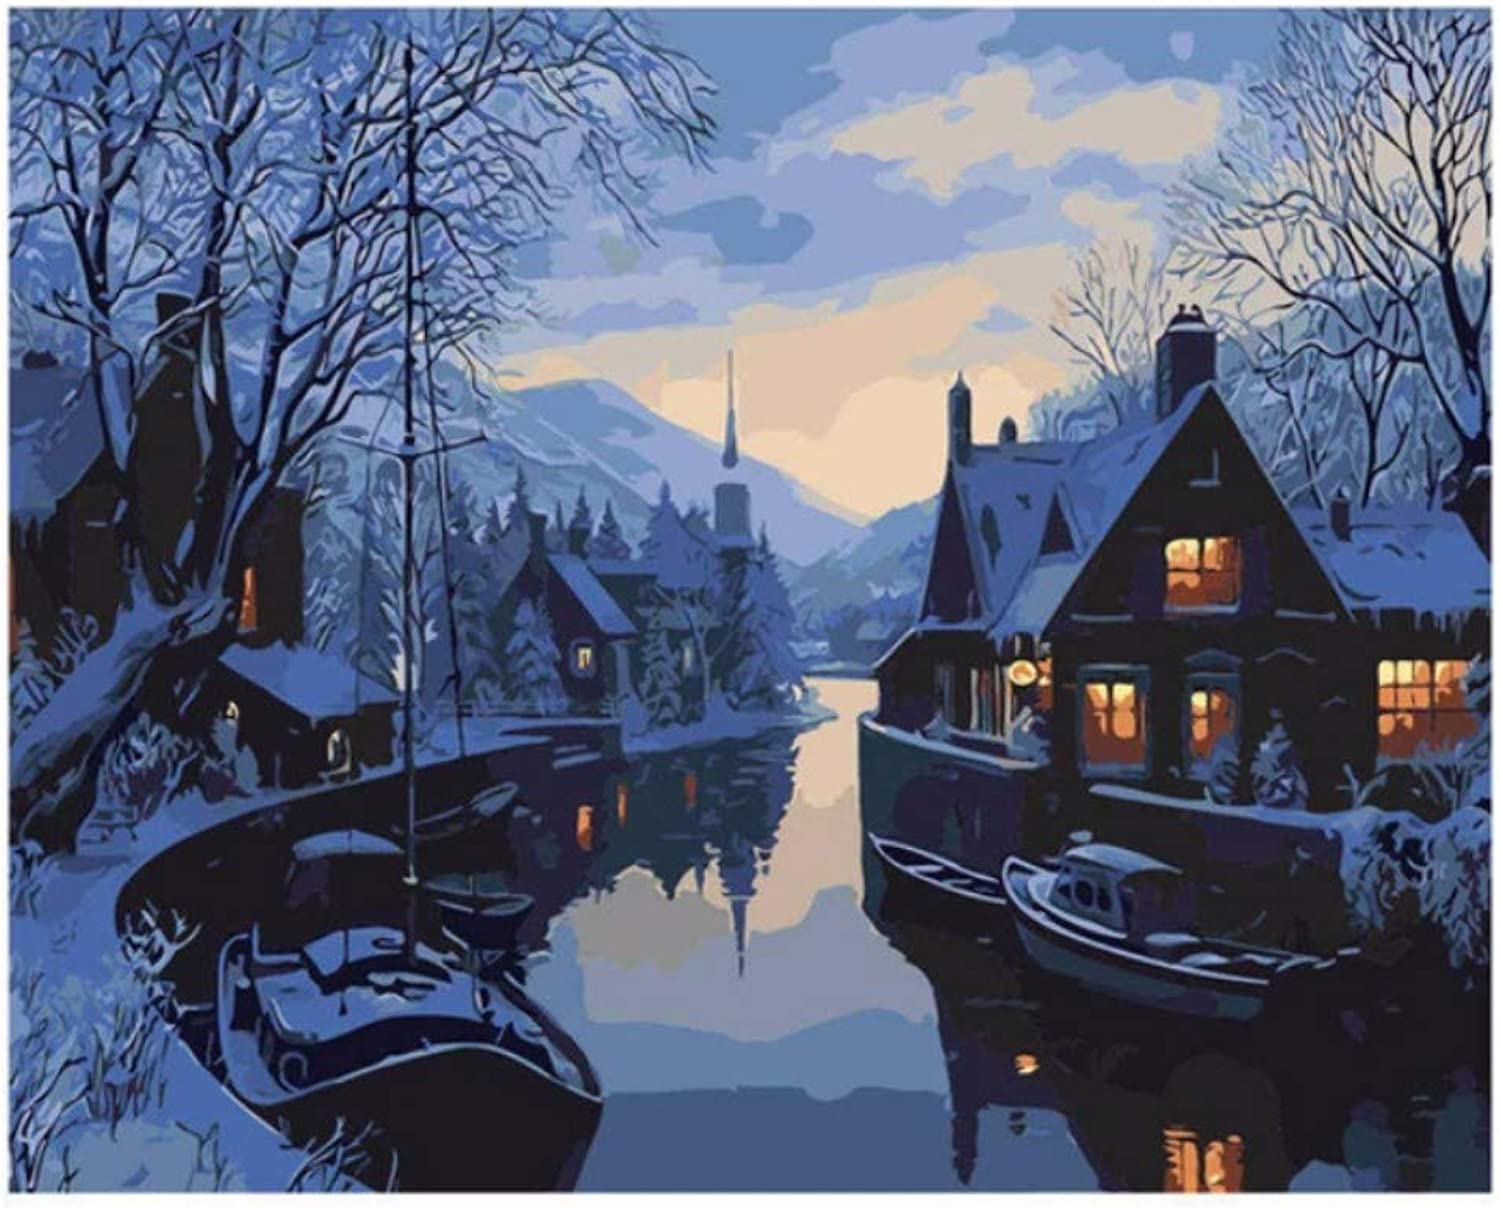 LIWEIXKY Cabin Painting By Numbers, Decoration Oil Painting For Living Room, Drawing By Numbers River, Framed, 50x60cm